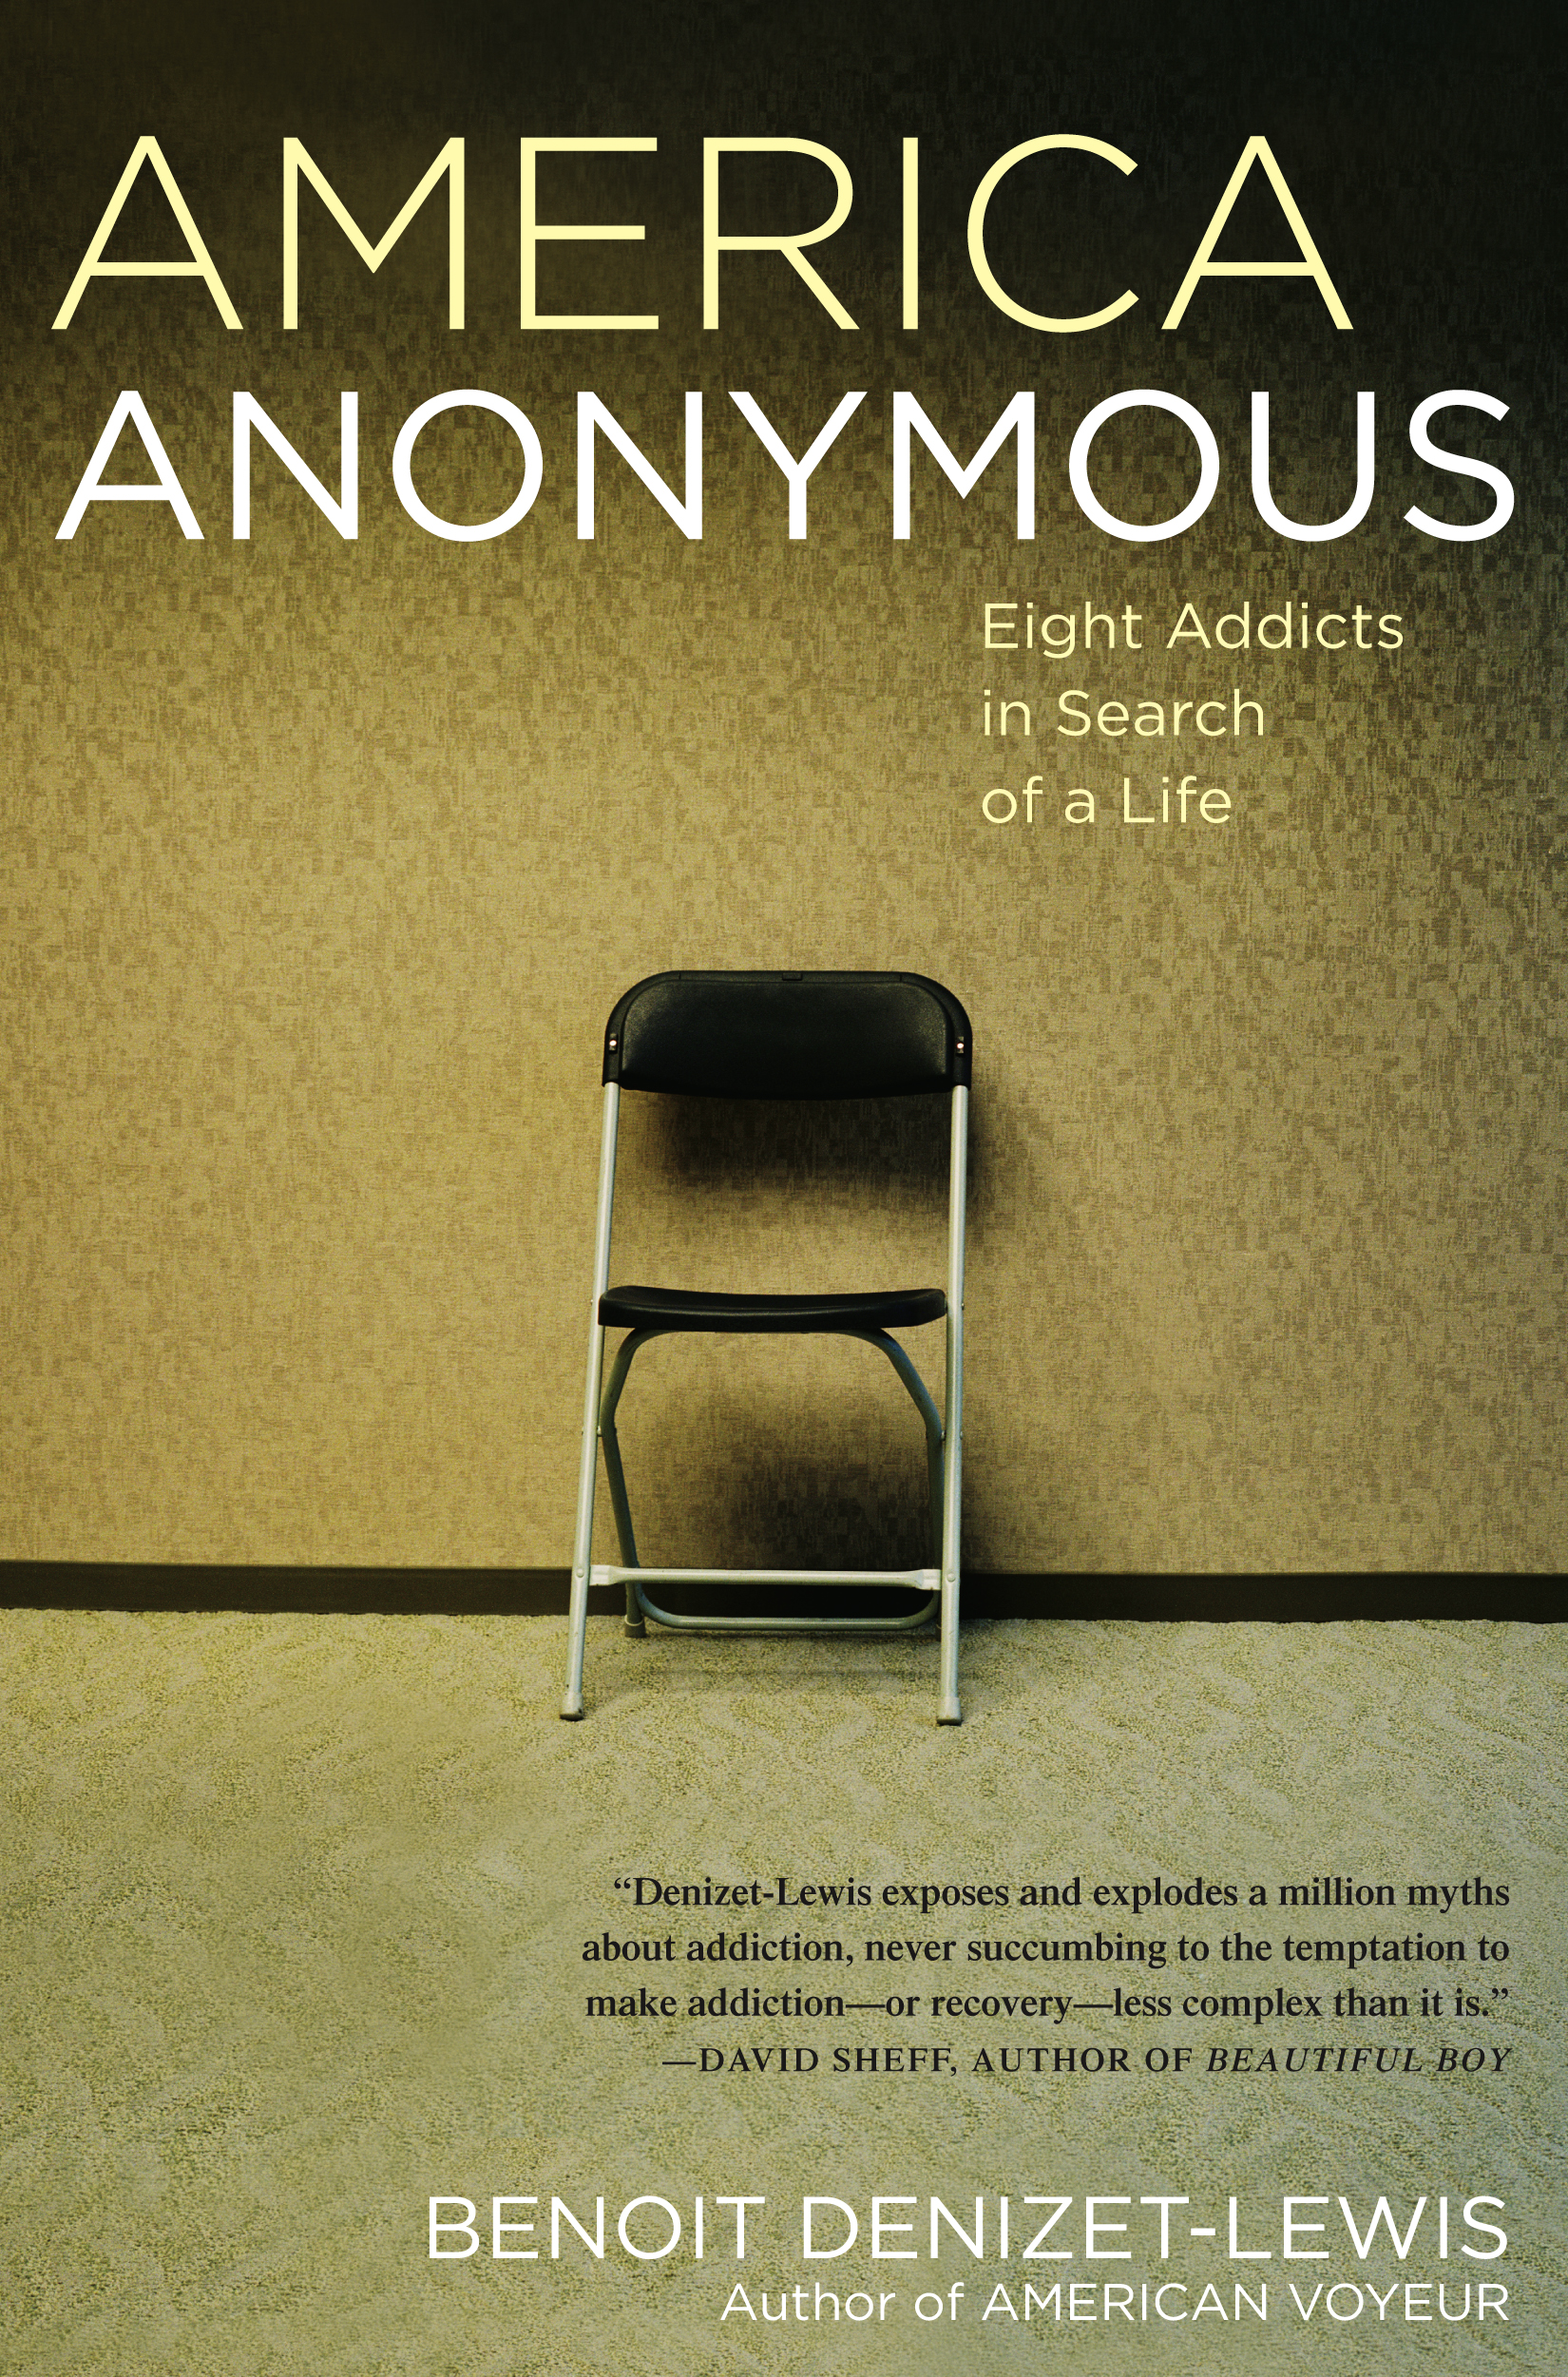 America anonymous ebook by benoit denizet lewis official publisher book cover image jpg america anonymous ebook 9781416594376 fandeluxe Choice Image